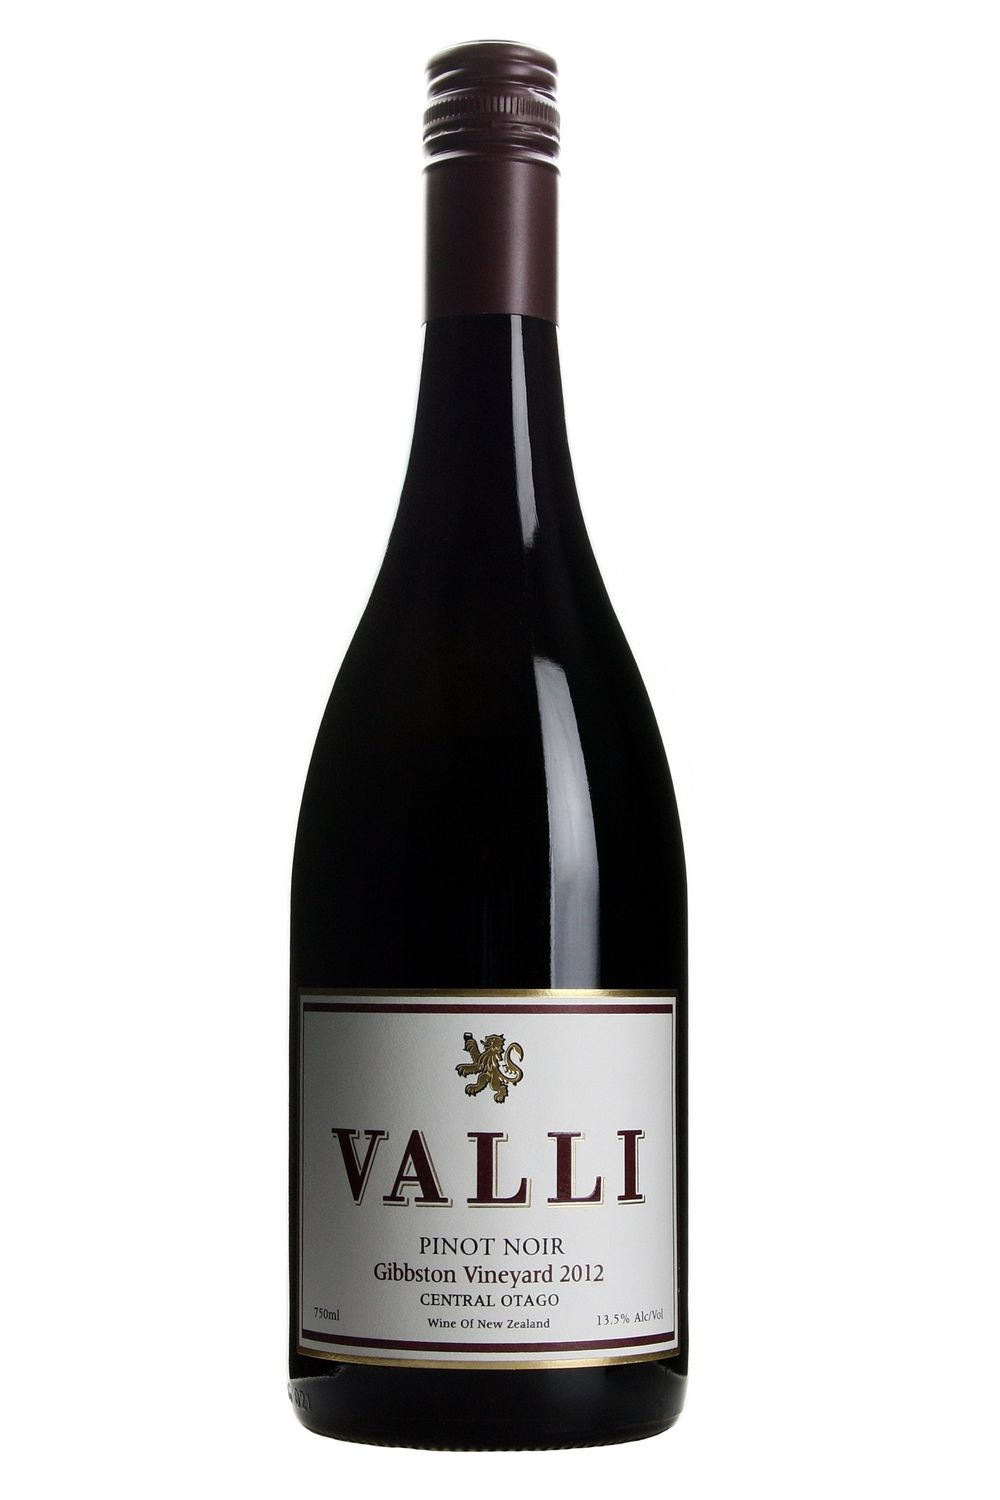 Valli Pinot Noir 2012 Gibbston